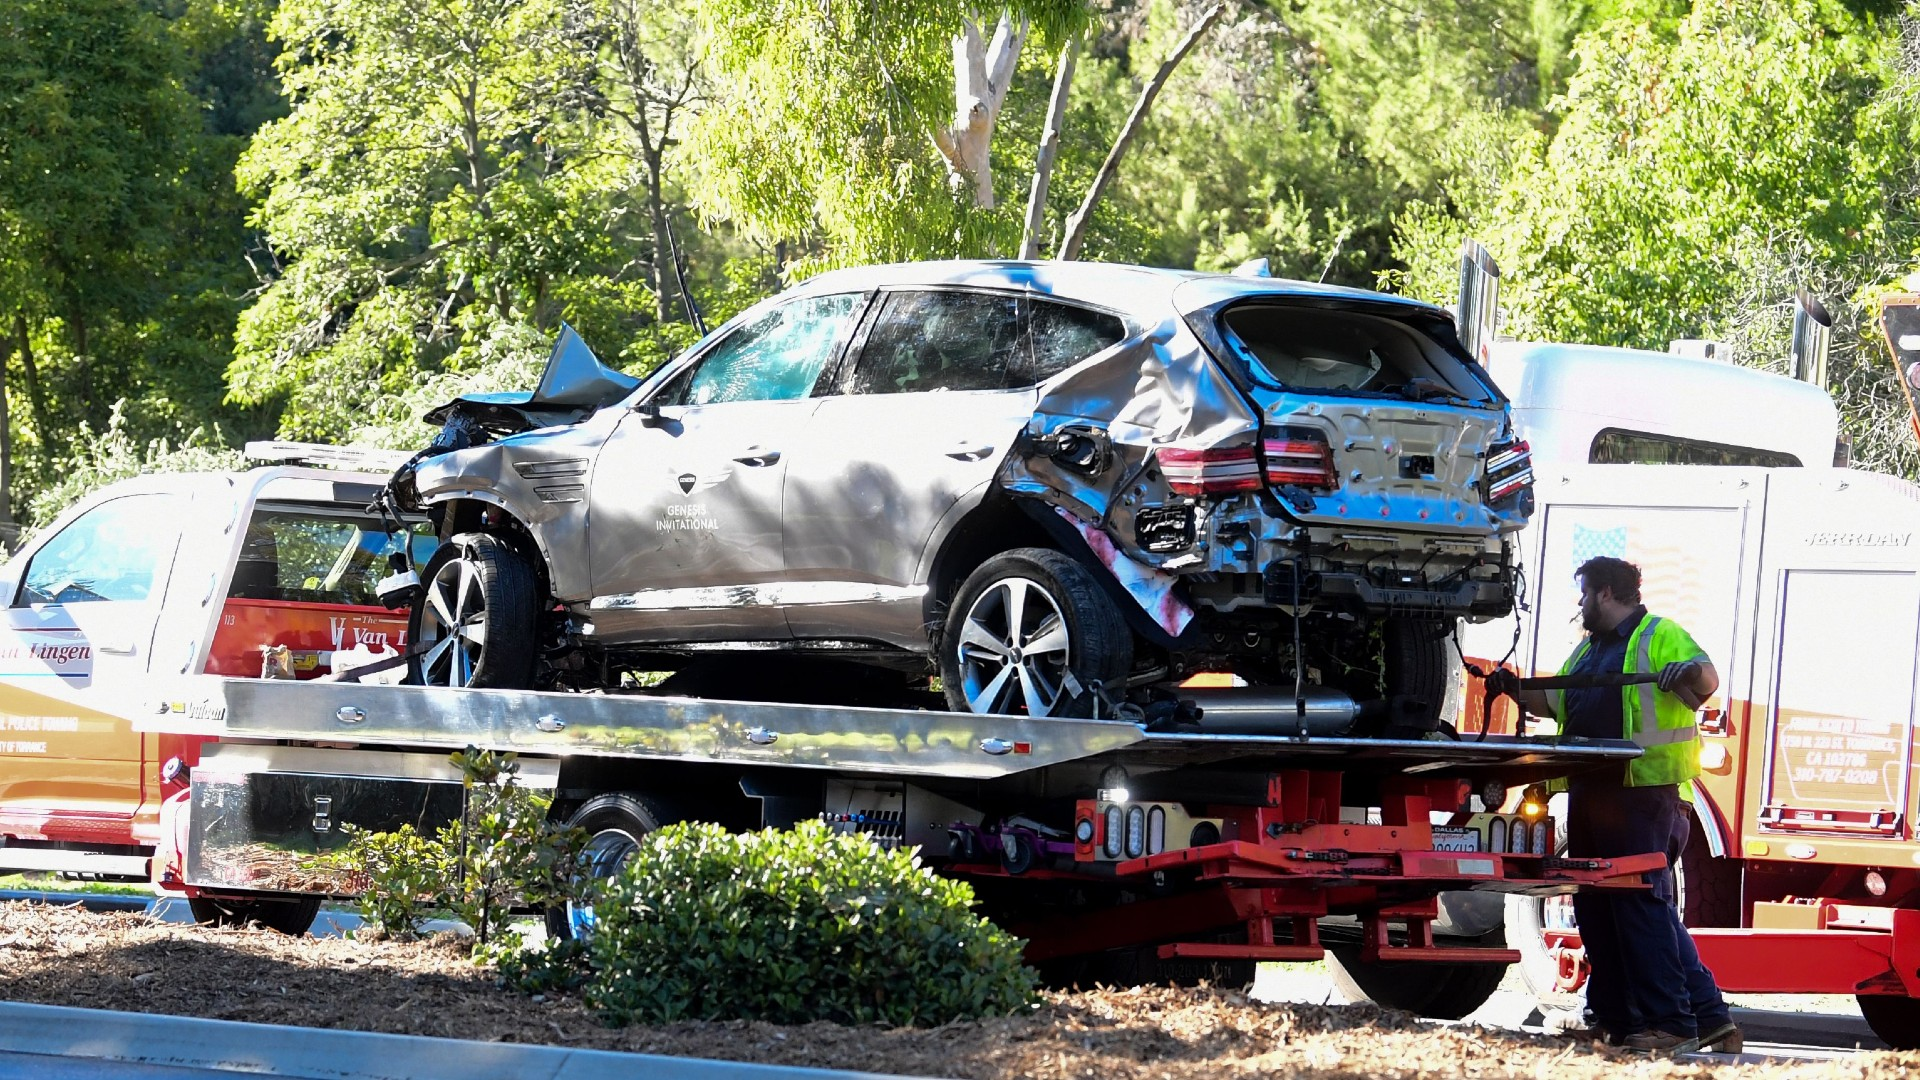 Tiger Woods 'lucky to be alive' after crash: Latest updates, details as  golf star recovers from car accident